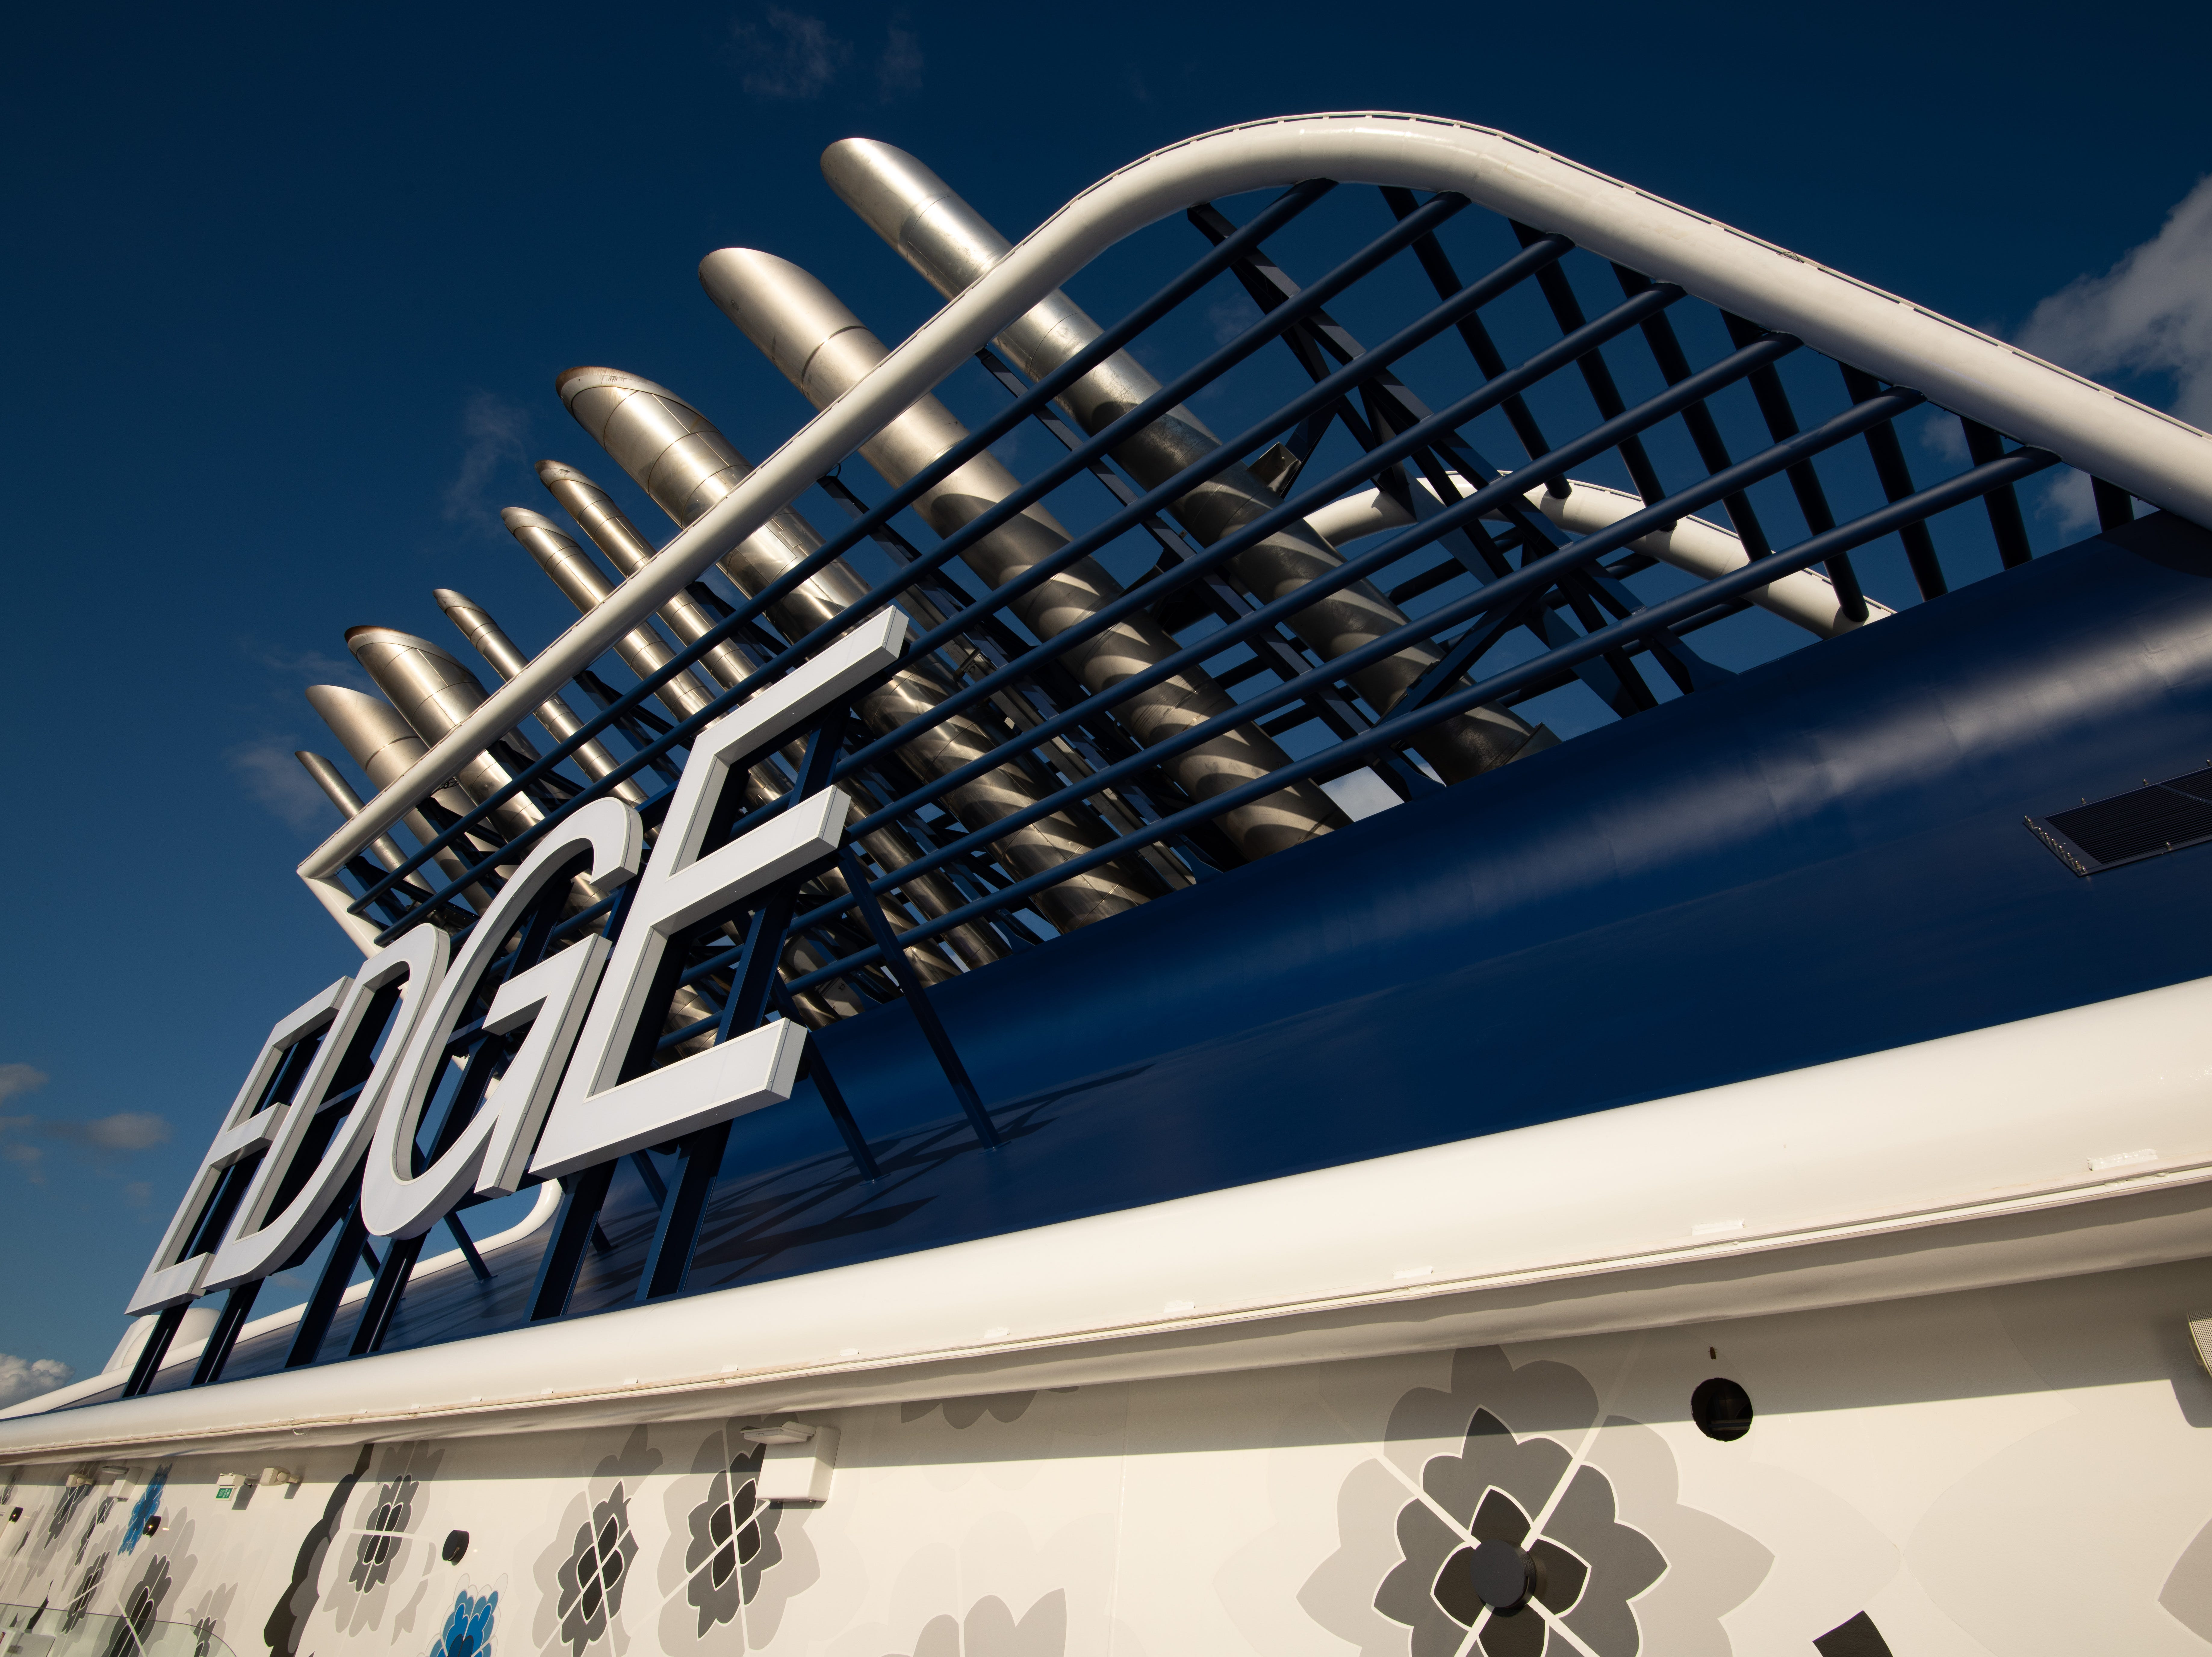 Celebrity Edge's name is spelled out in big white letters on the sides of ship's funnel.